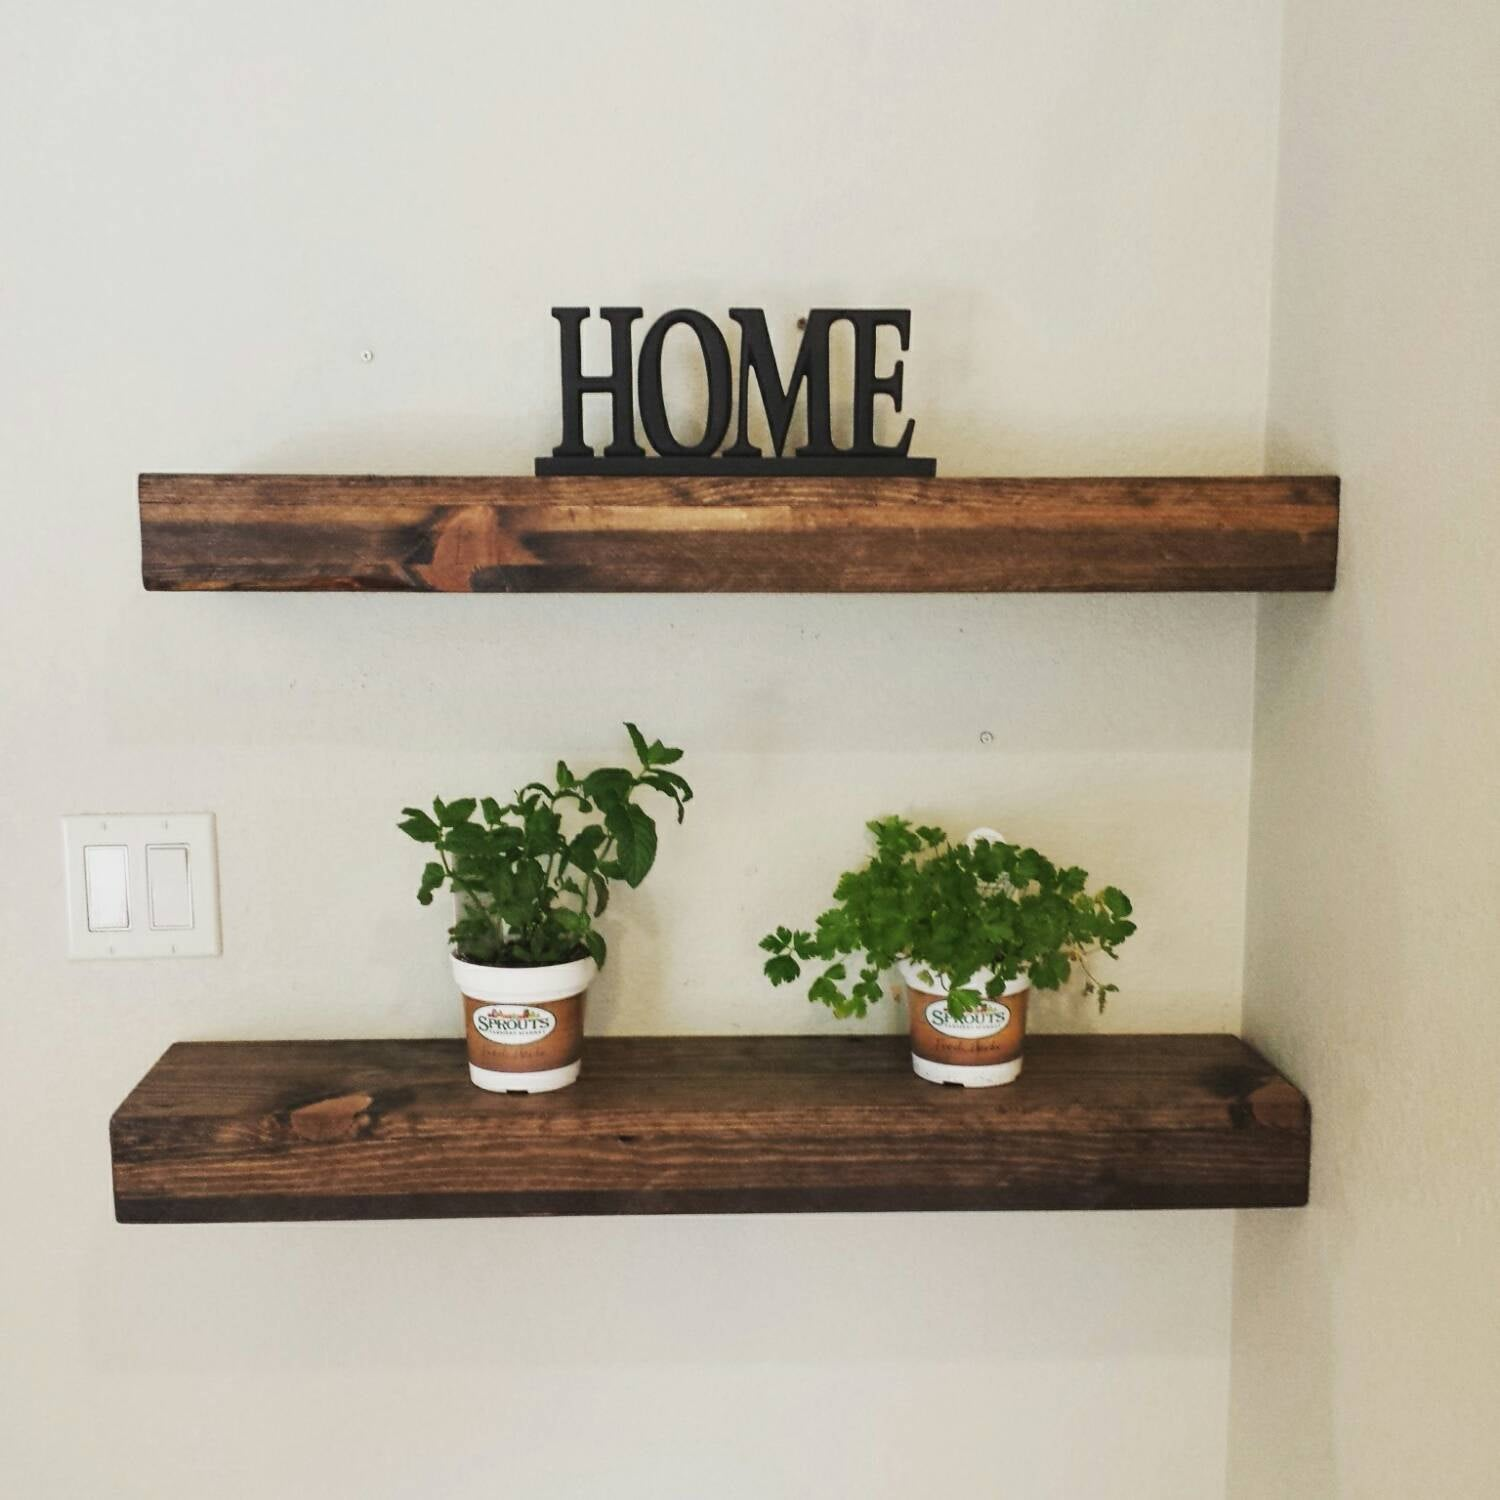 handmade rustic and reclaimed wood floating shelves mantel etsy fullxfull dark shelf board high shoe rack over bath storage metal shelving wall mounted dresser drawers mount